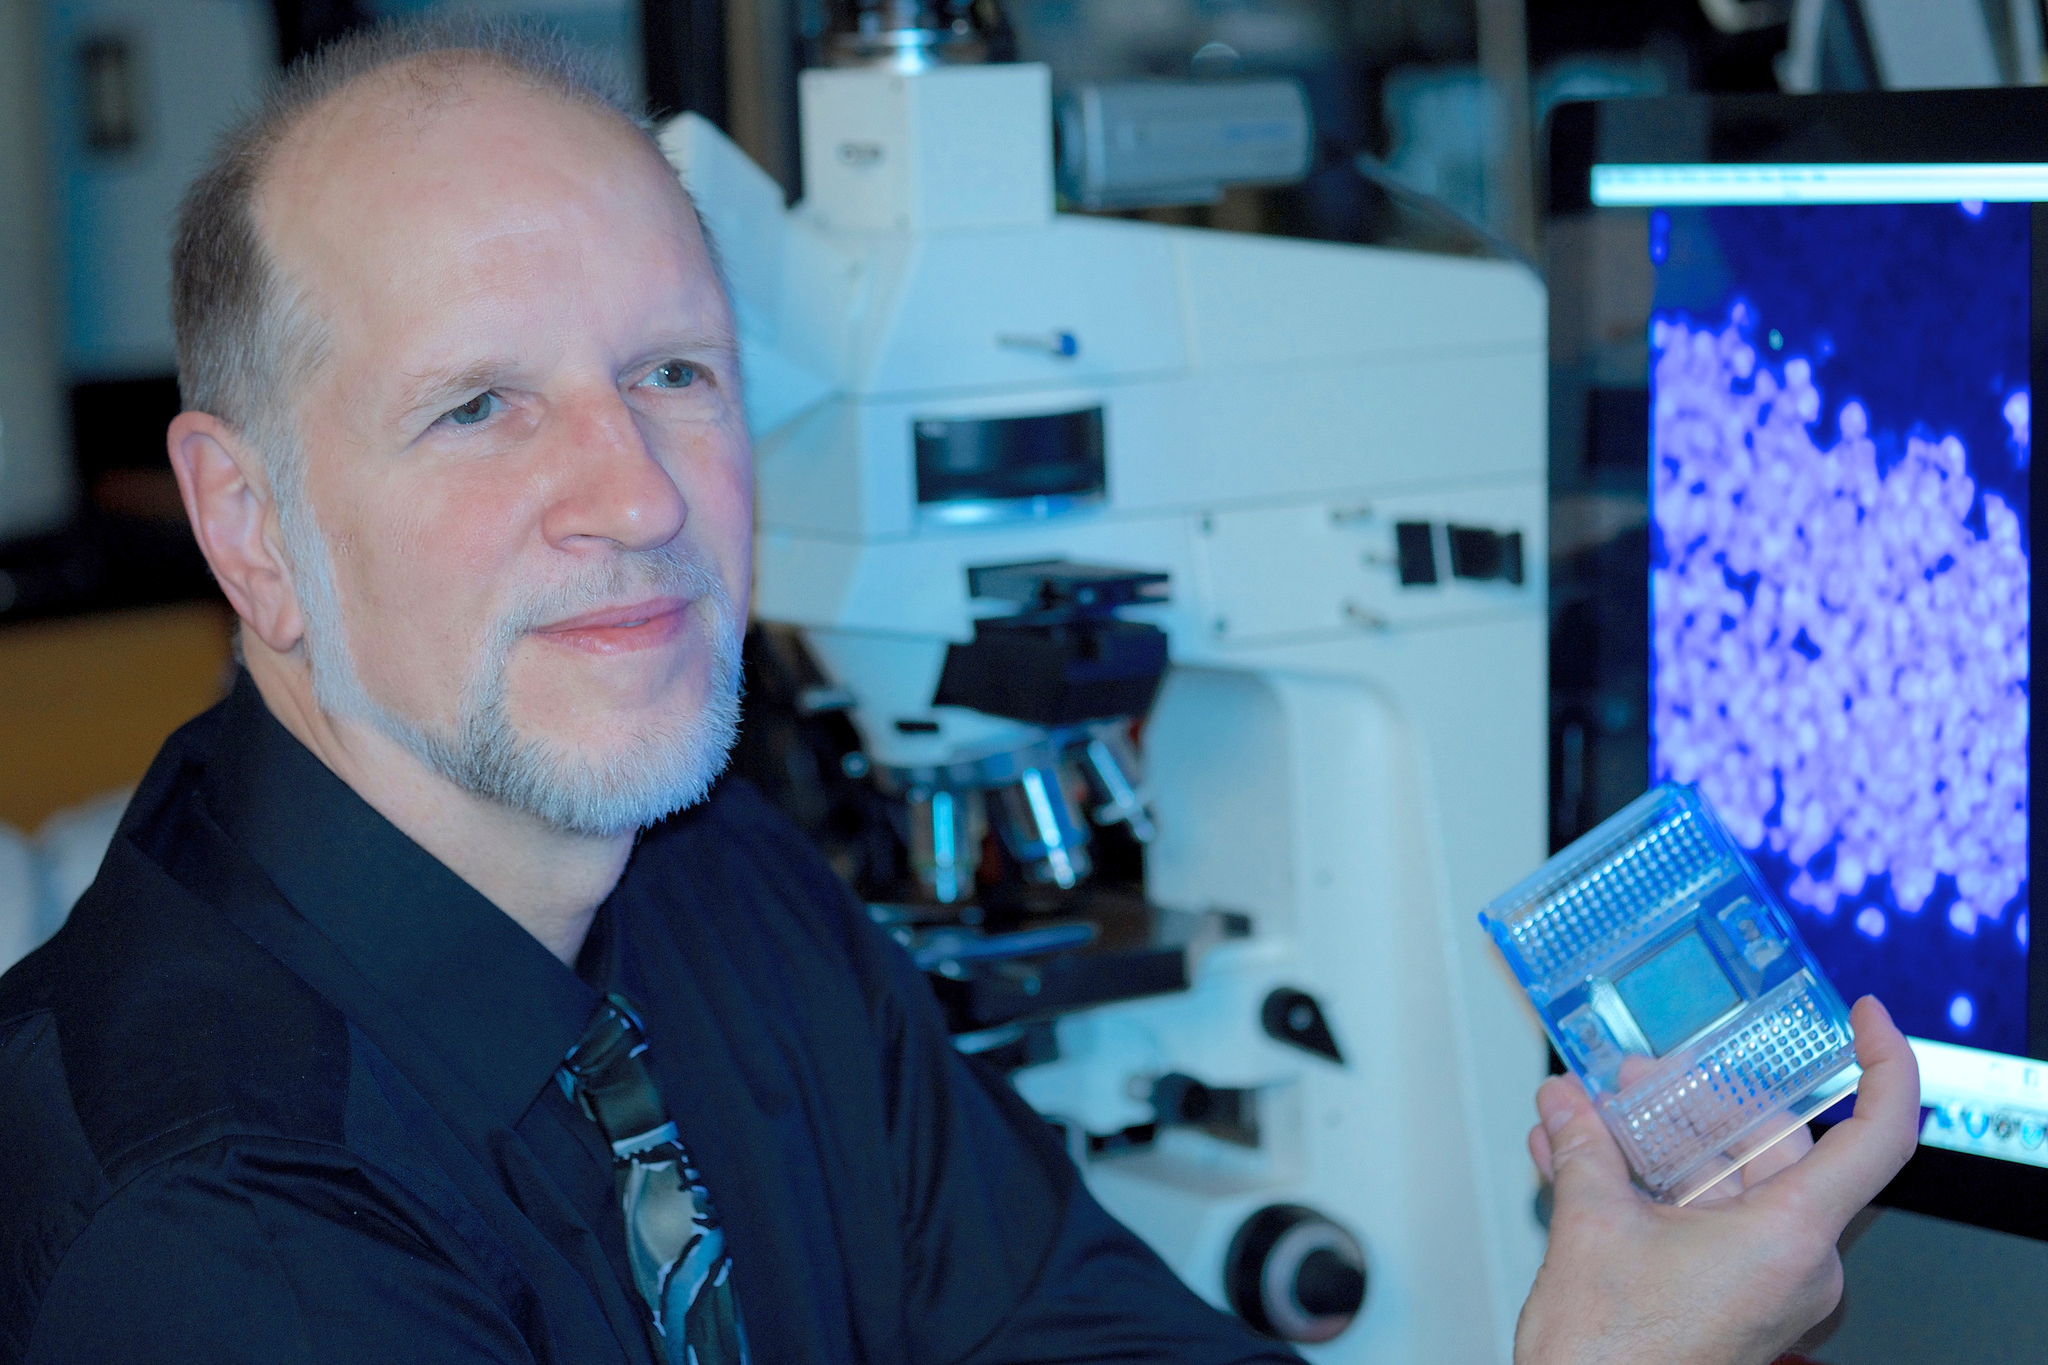 UTHSC's Dr. Robert Williams Among Collaborators on Groundbreaking Brain Research Published in Nature